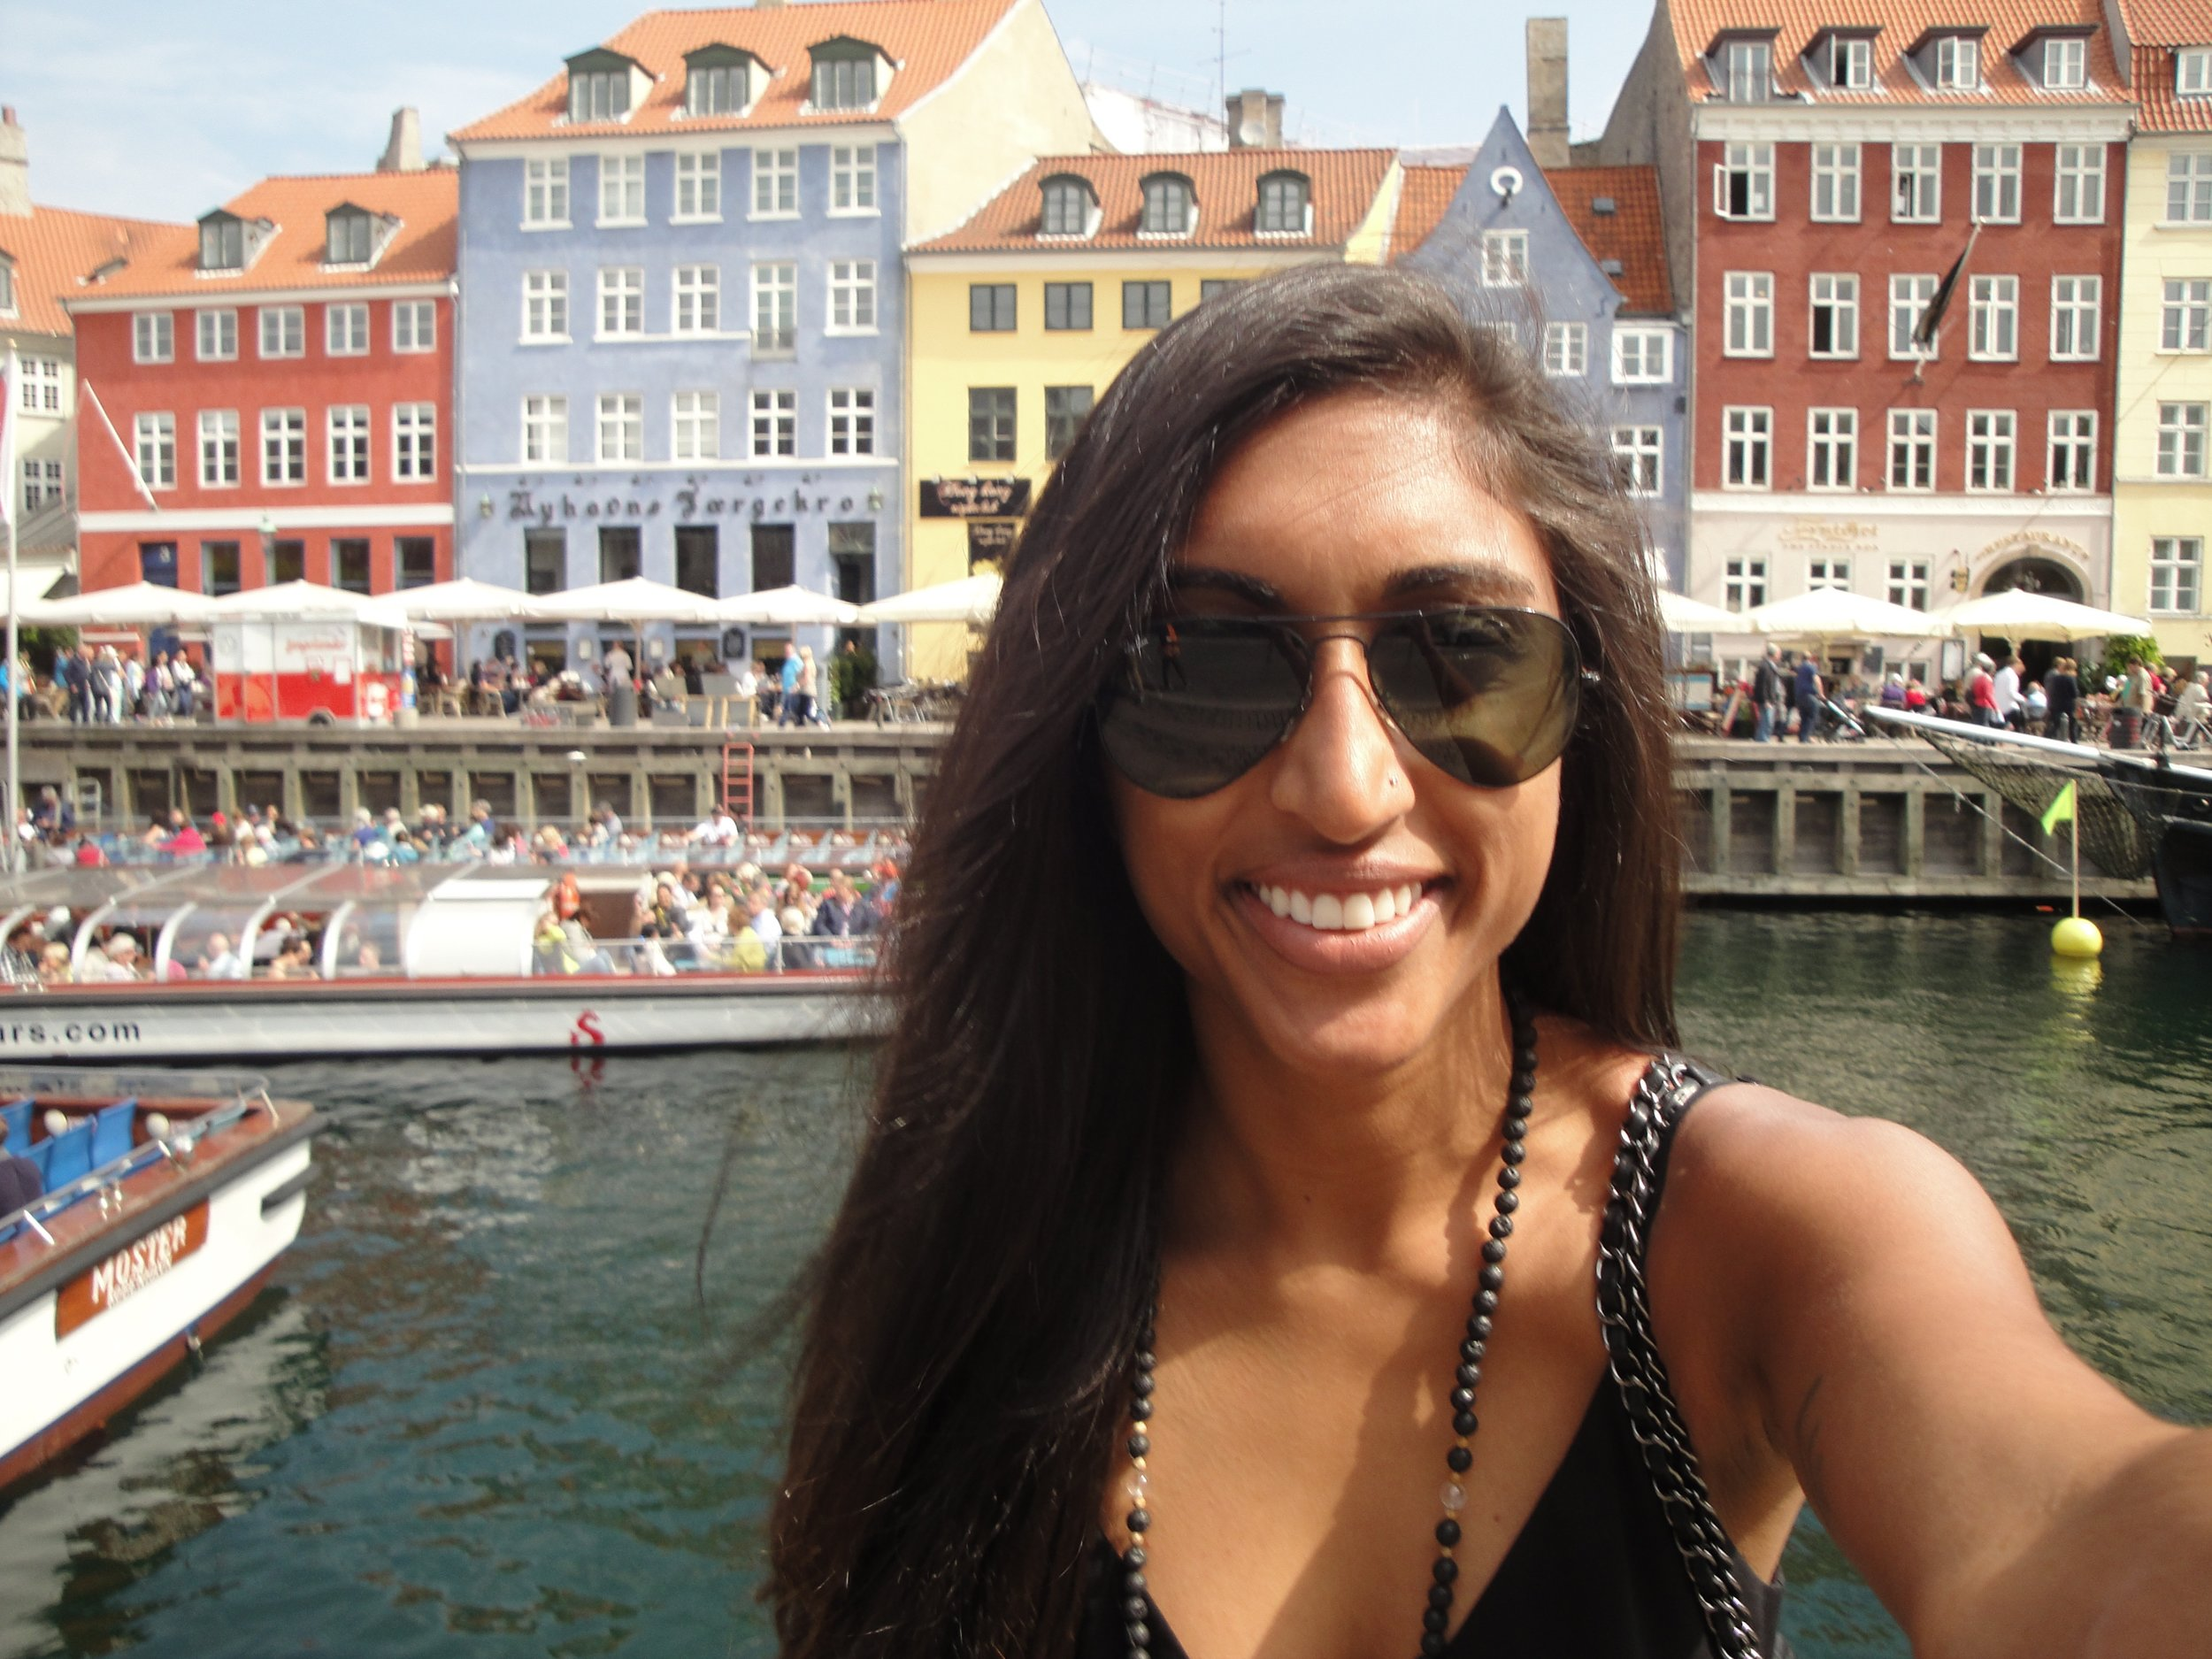 One must take typical tourist pictures when traveling to wonders of this world, especially when it's colorful Copenhagen.